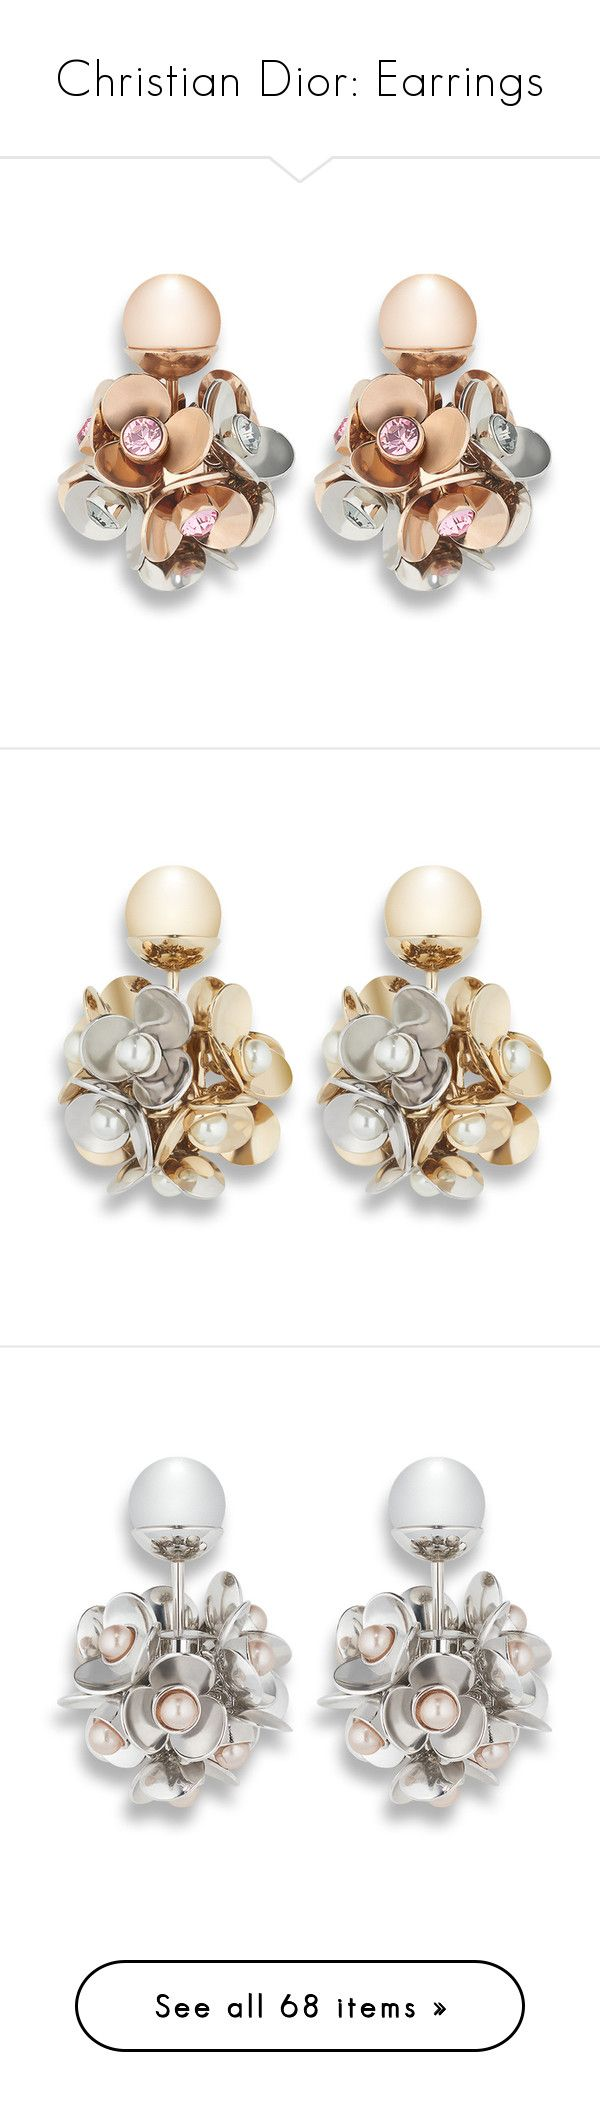 """""""Christian Dior: Earrings"""" by livnd ❤ liked on Polyvore featuring jewelry, earrings, earring jewelry, tribal jewelry, tribal earrings, tribal jewellery, clip back earrings, clip on earrings and clip earrings - Sale! Up to 75% OFF! Shot at Stylizio for women's and men's designer handbags, luxury sunglasses, watches, jewelry, purses, wallets, clothes, underwear"""